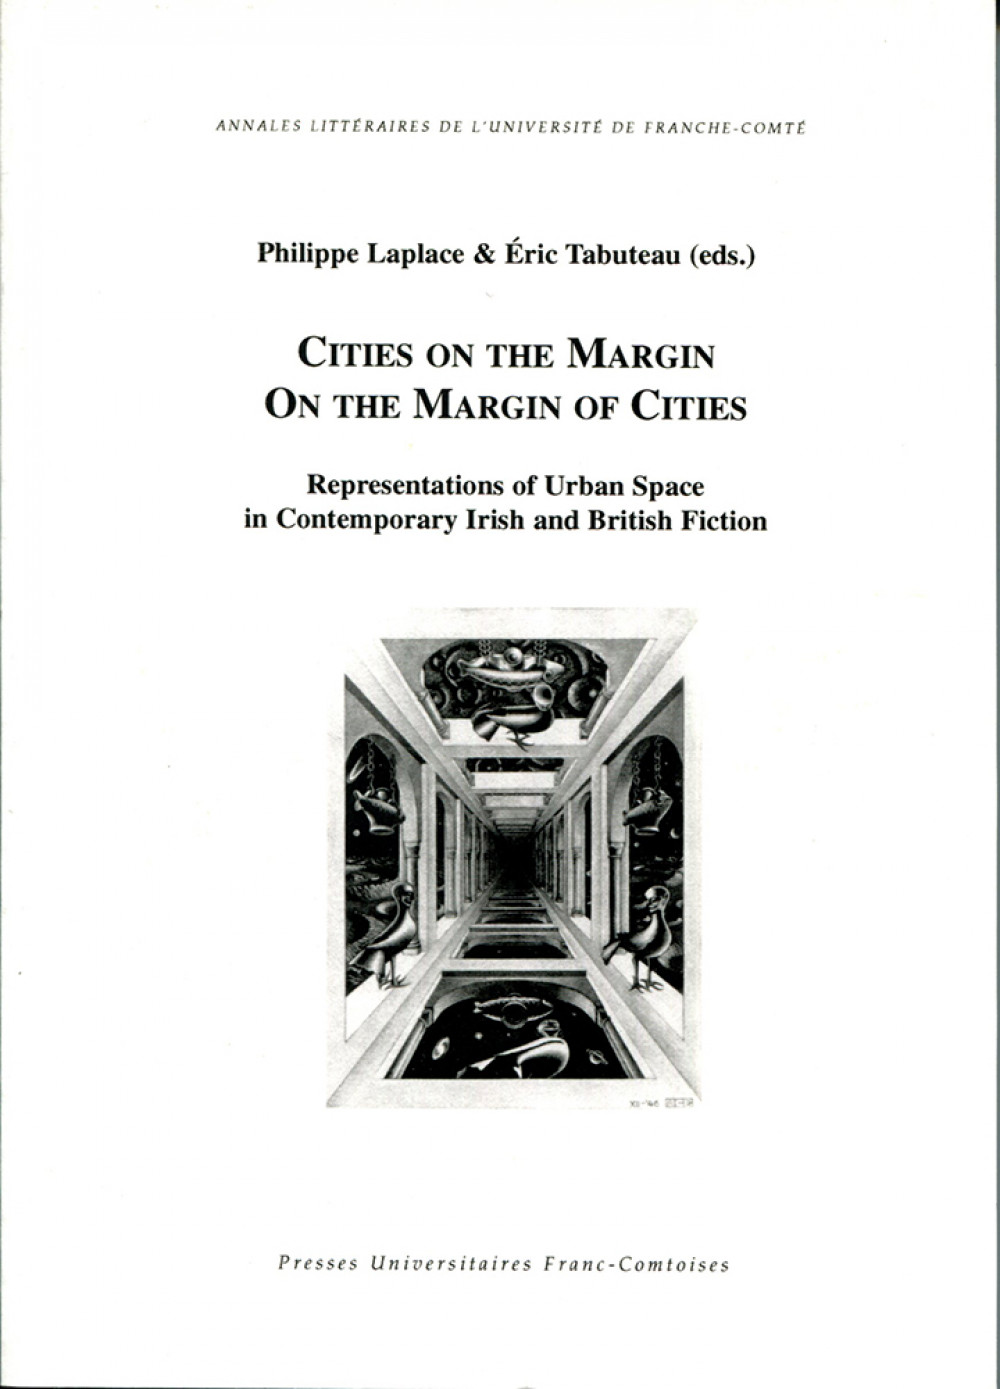 Cities on the Margin - On the Margin of Cities